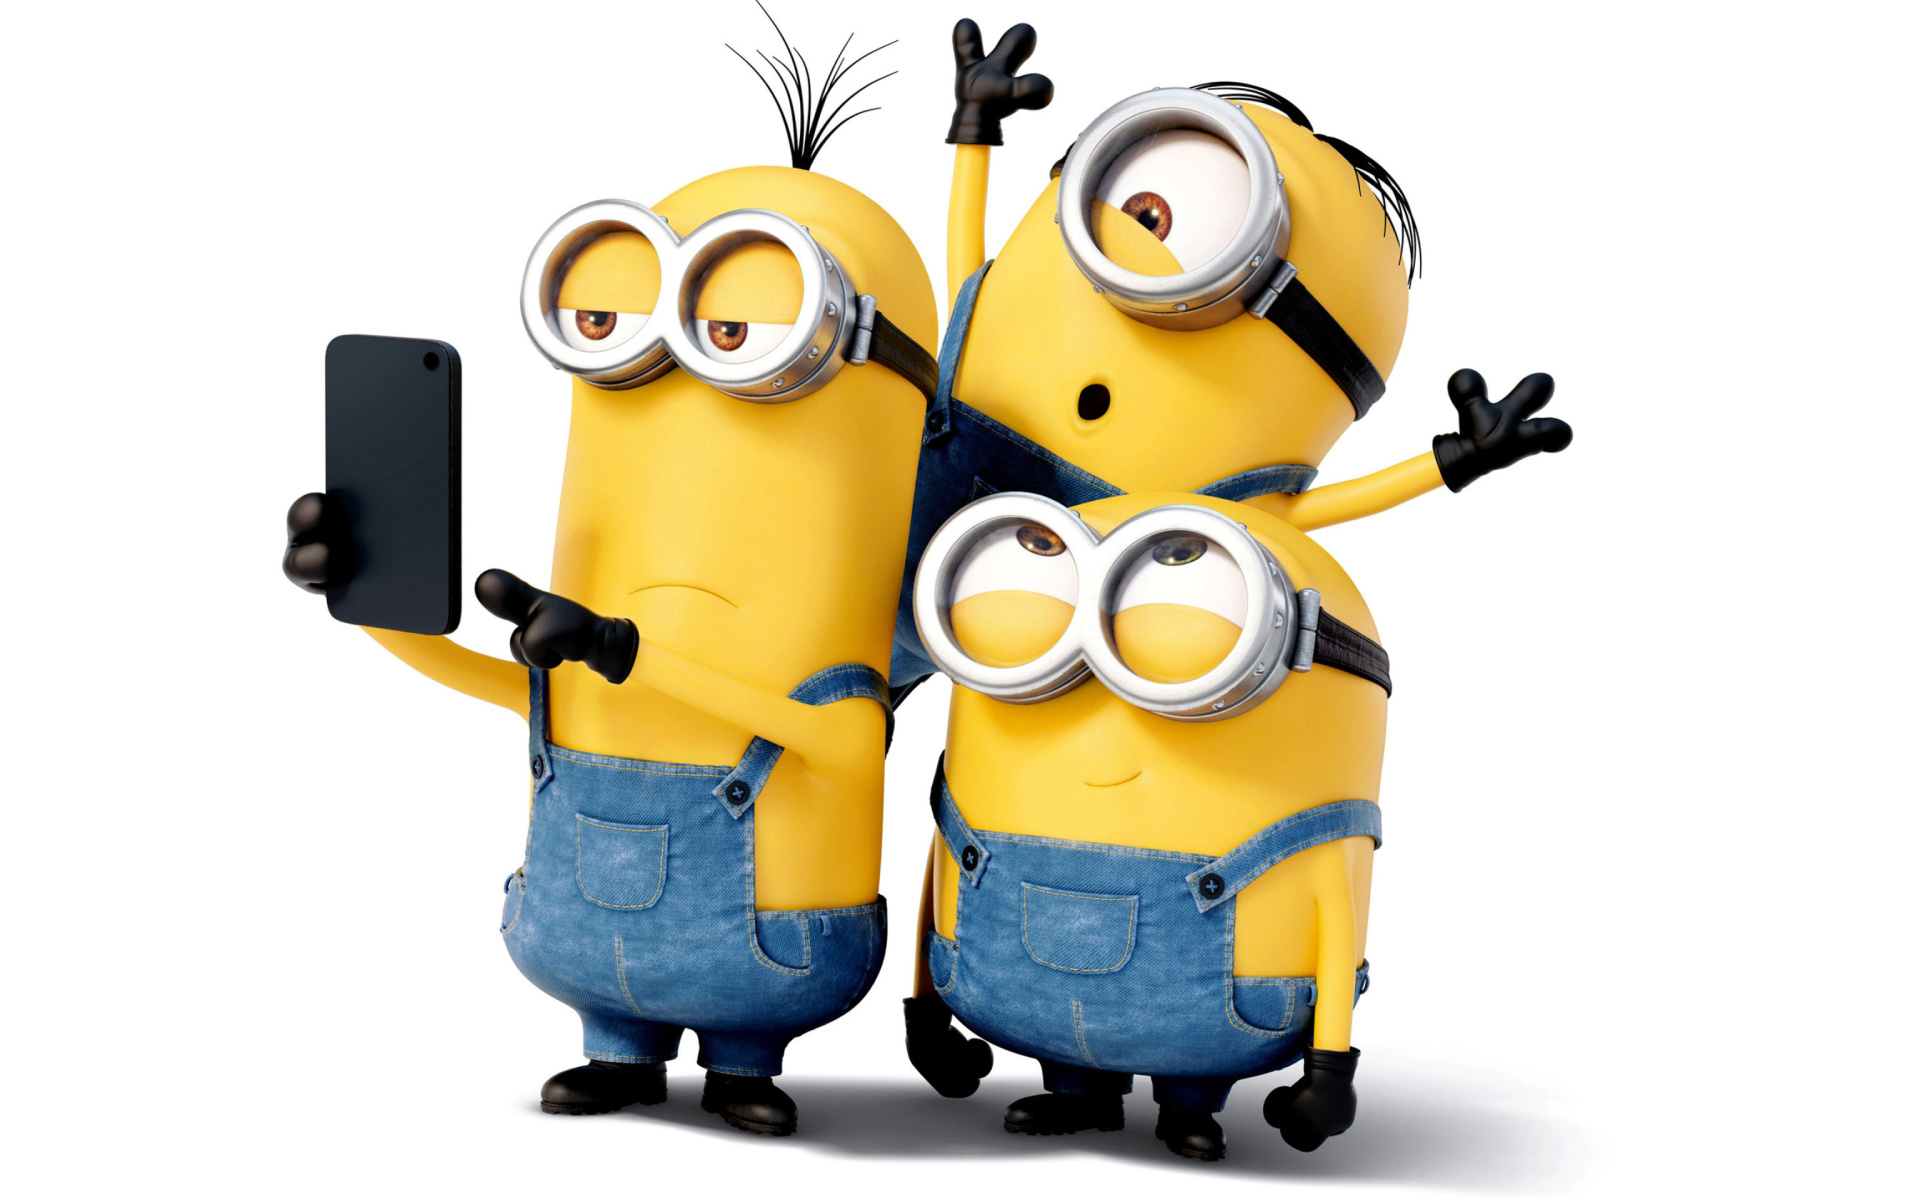 cute minion hd wallpaper download free | pixelstalk